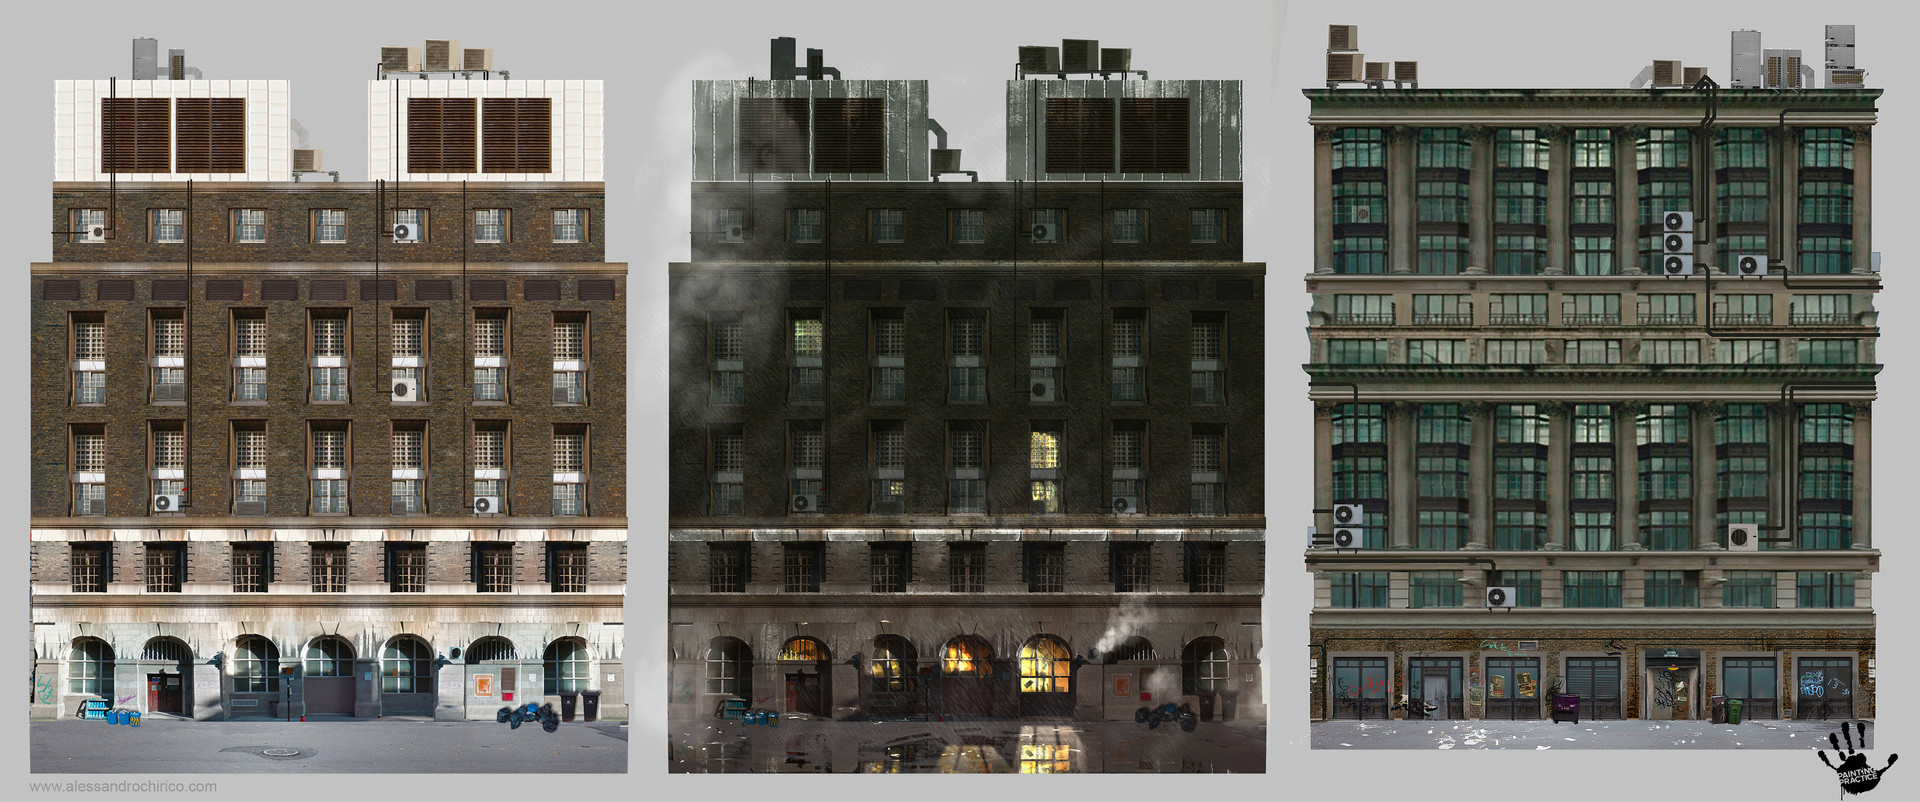 Alessandro chirico 9 buildings lineup concept